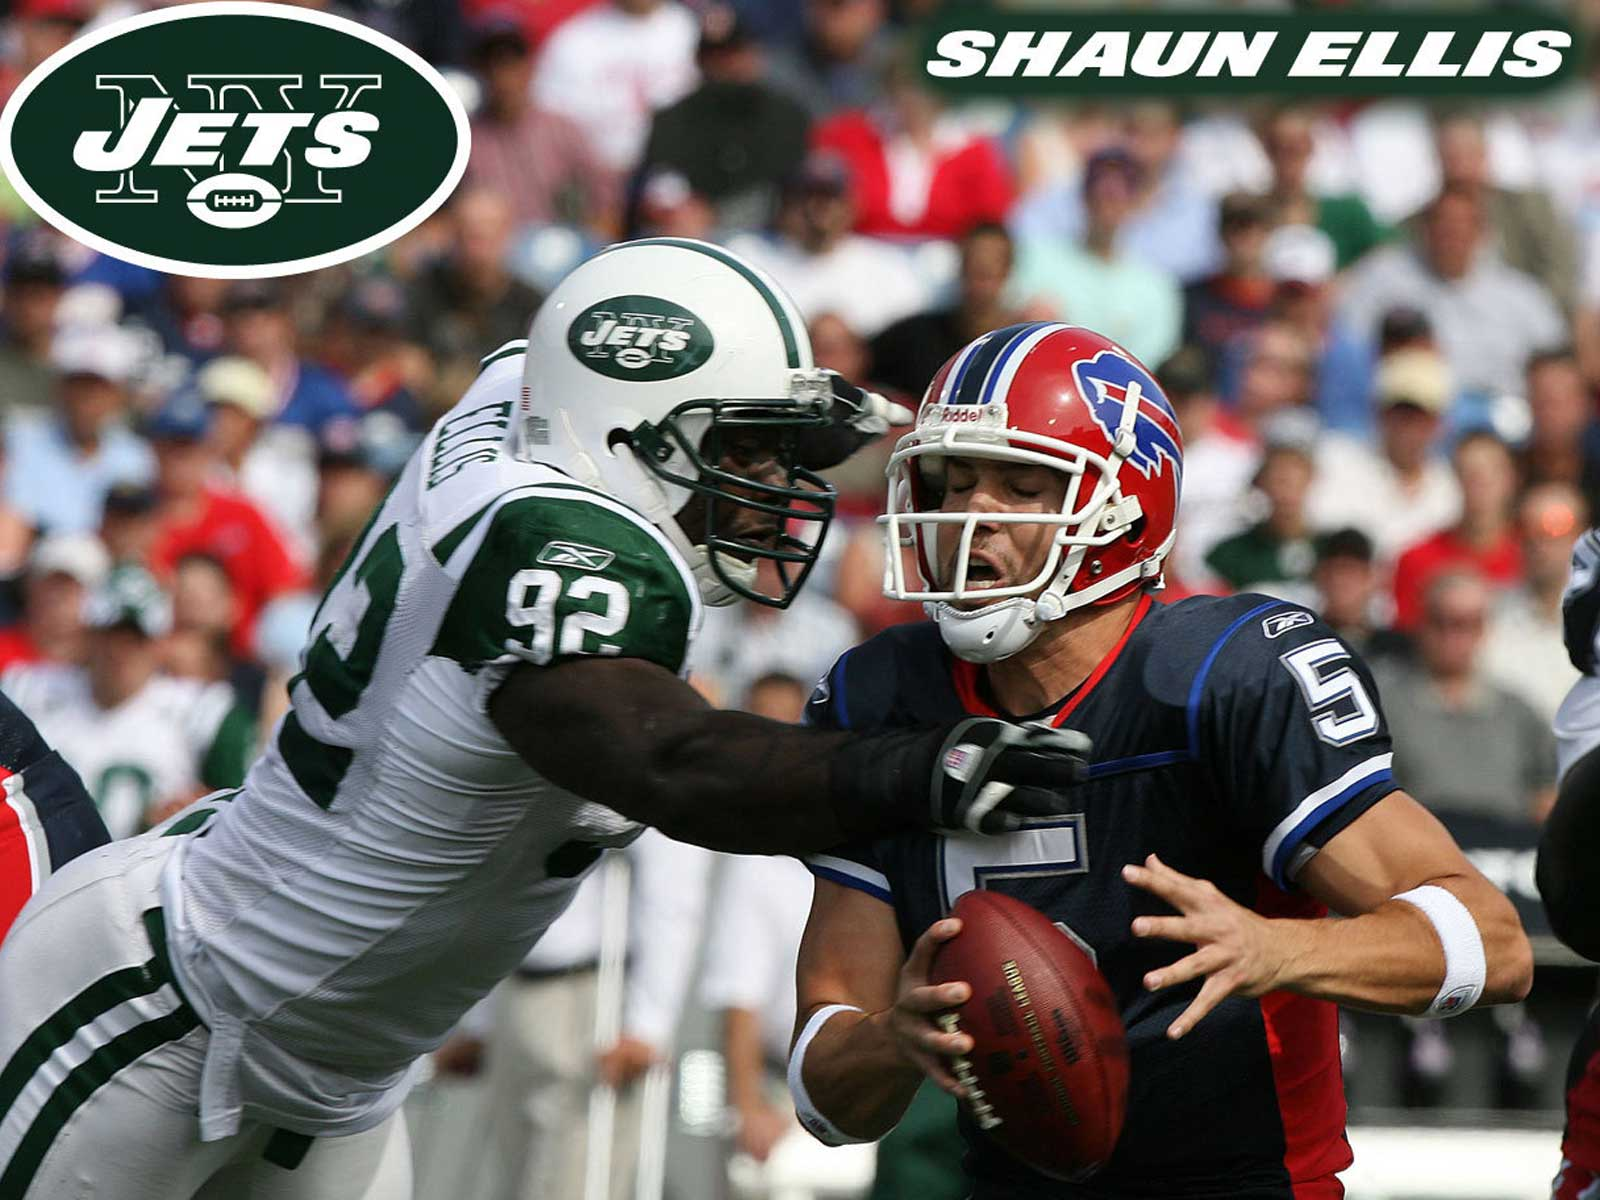 Ellis Shaun wallpaper, NY Jets wallpaper, nfl wallpaper